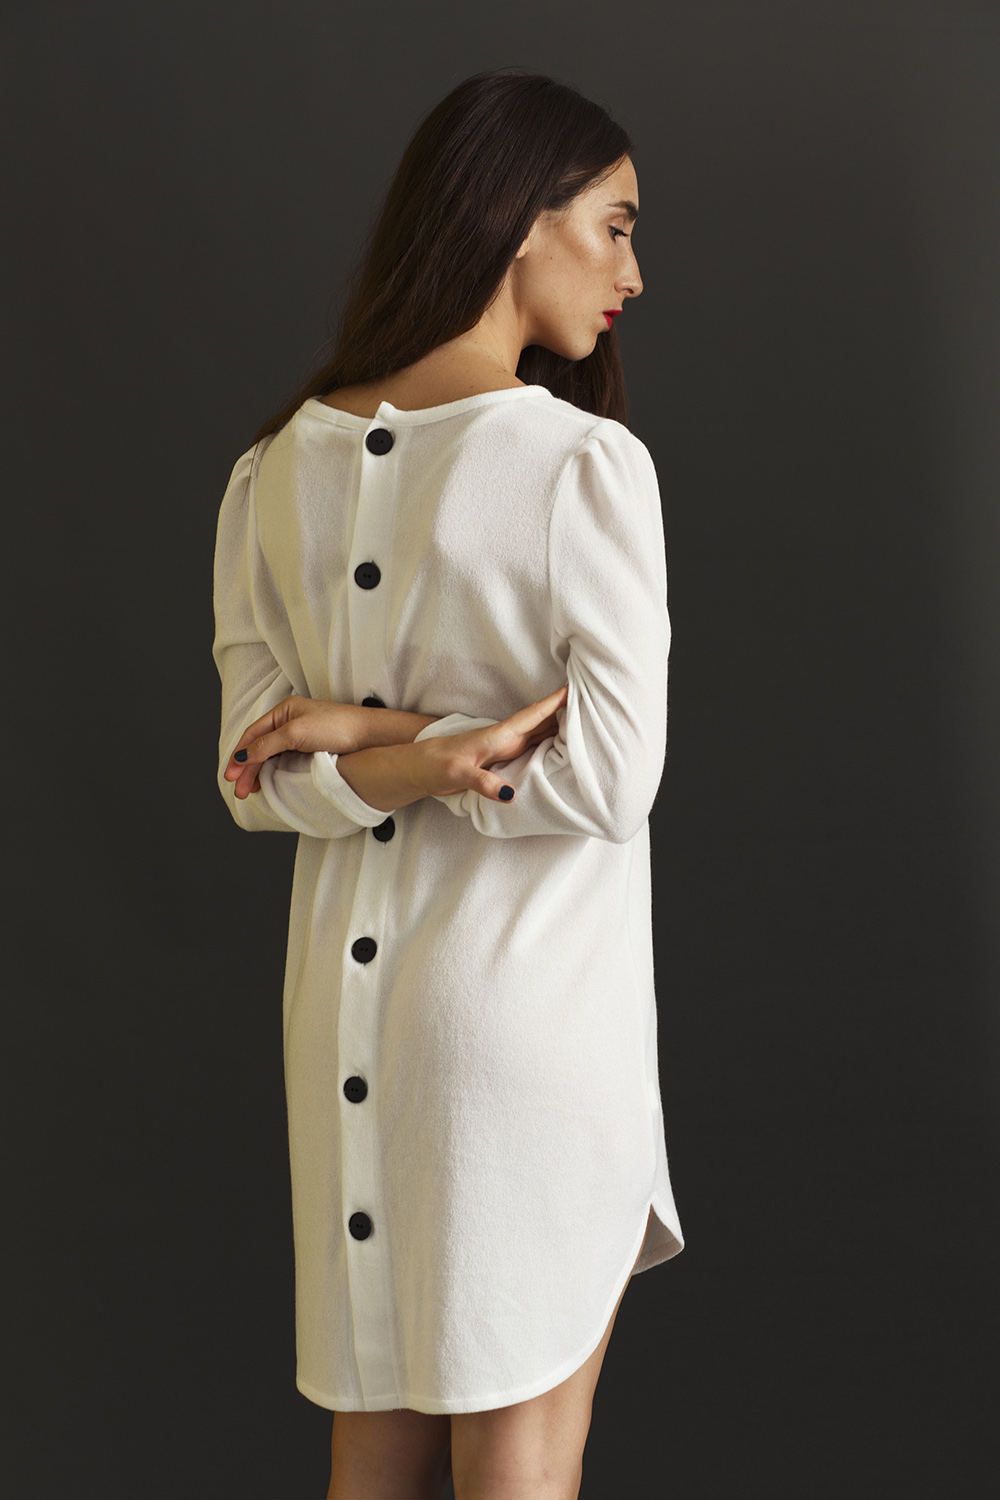 LIAHFASHION white Madison tunic dress no.2